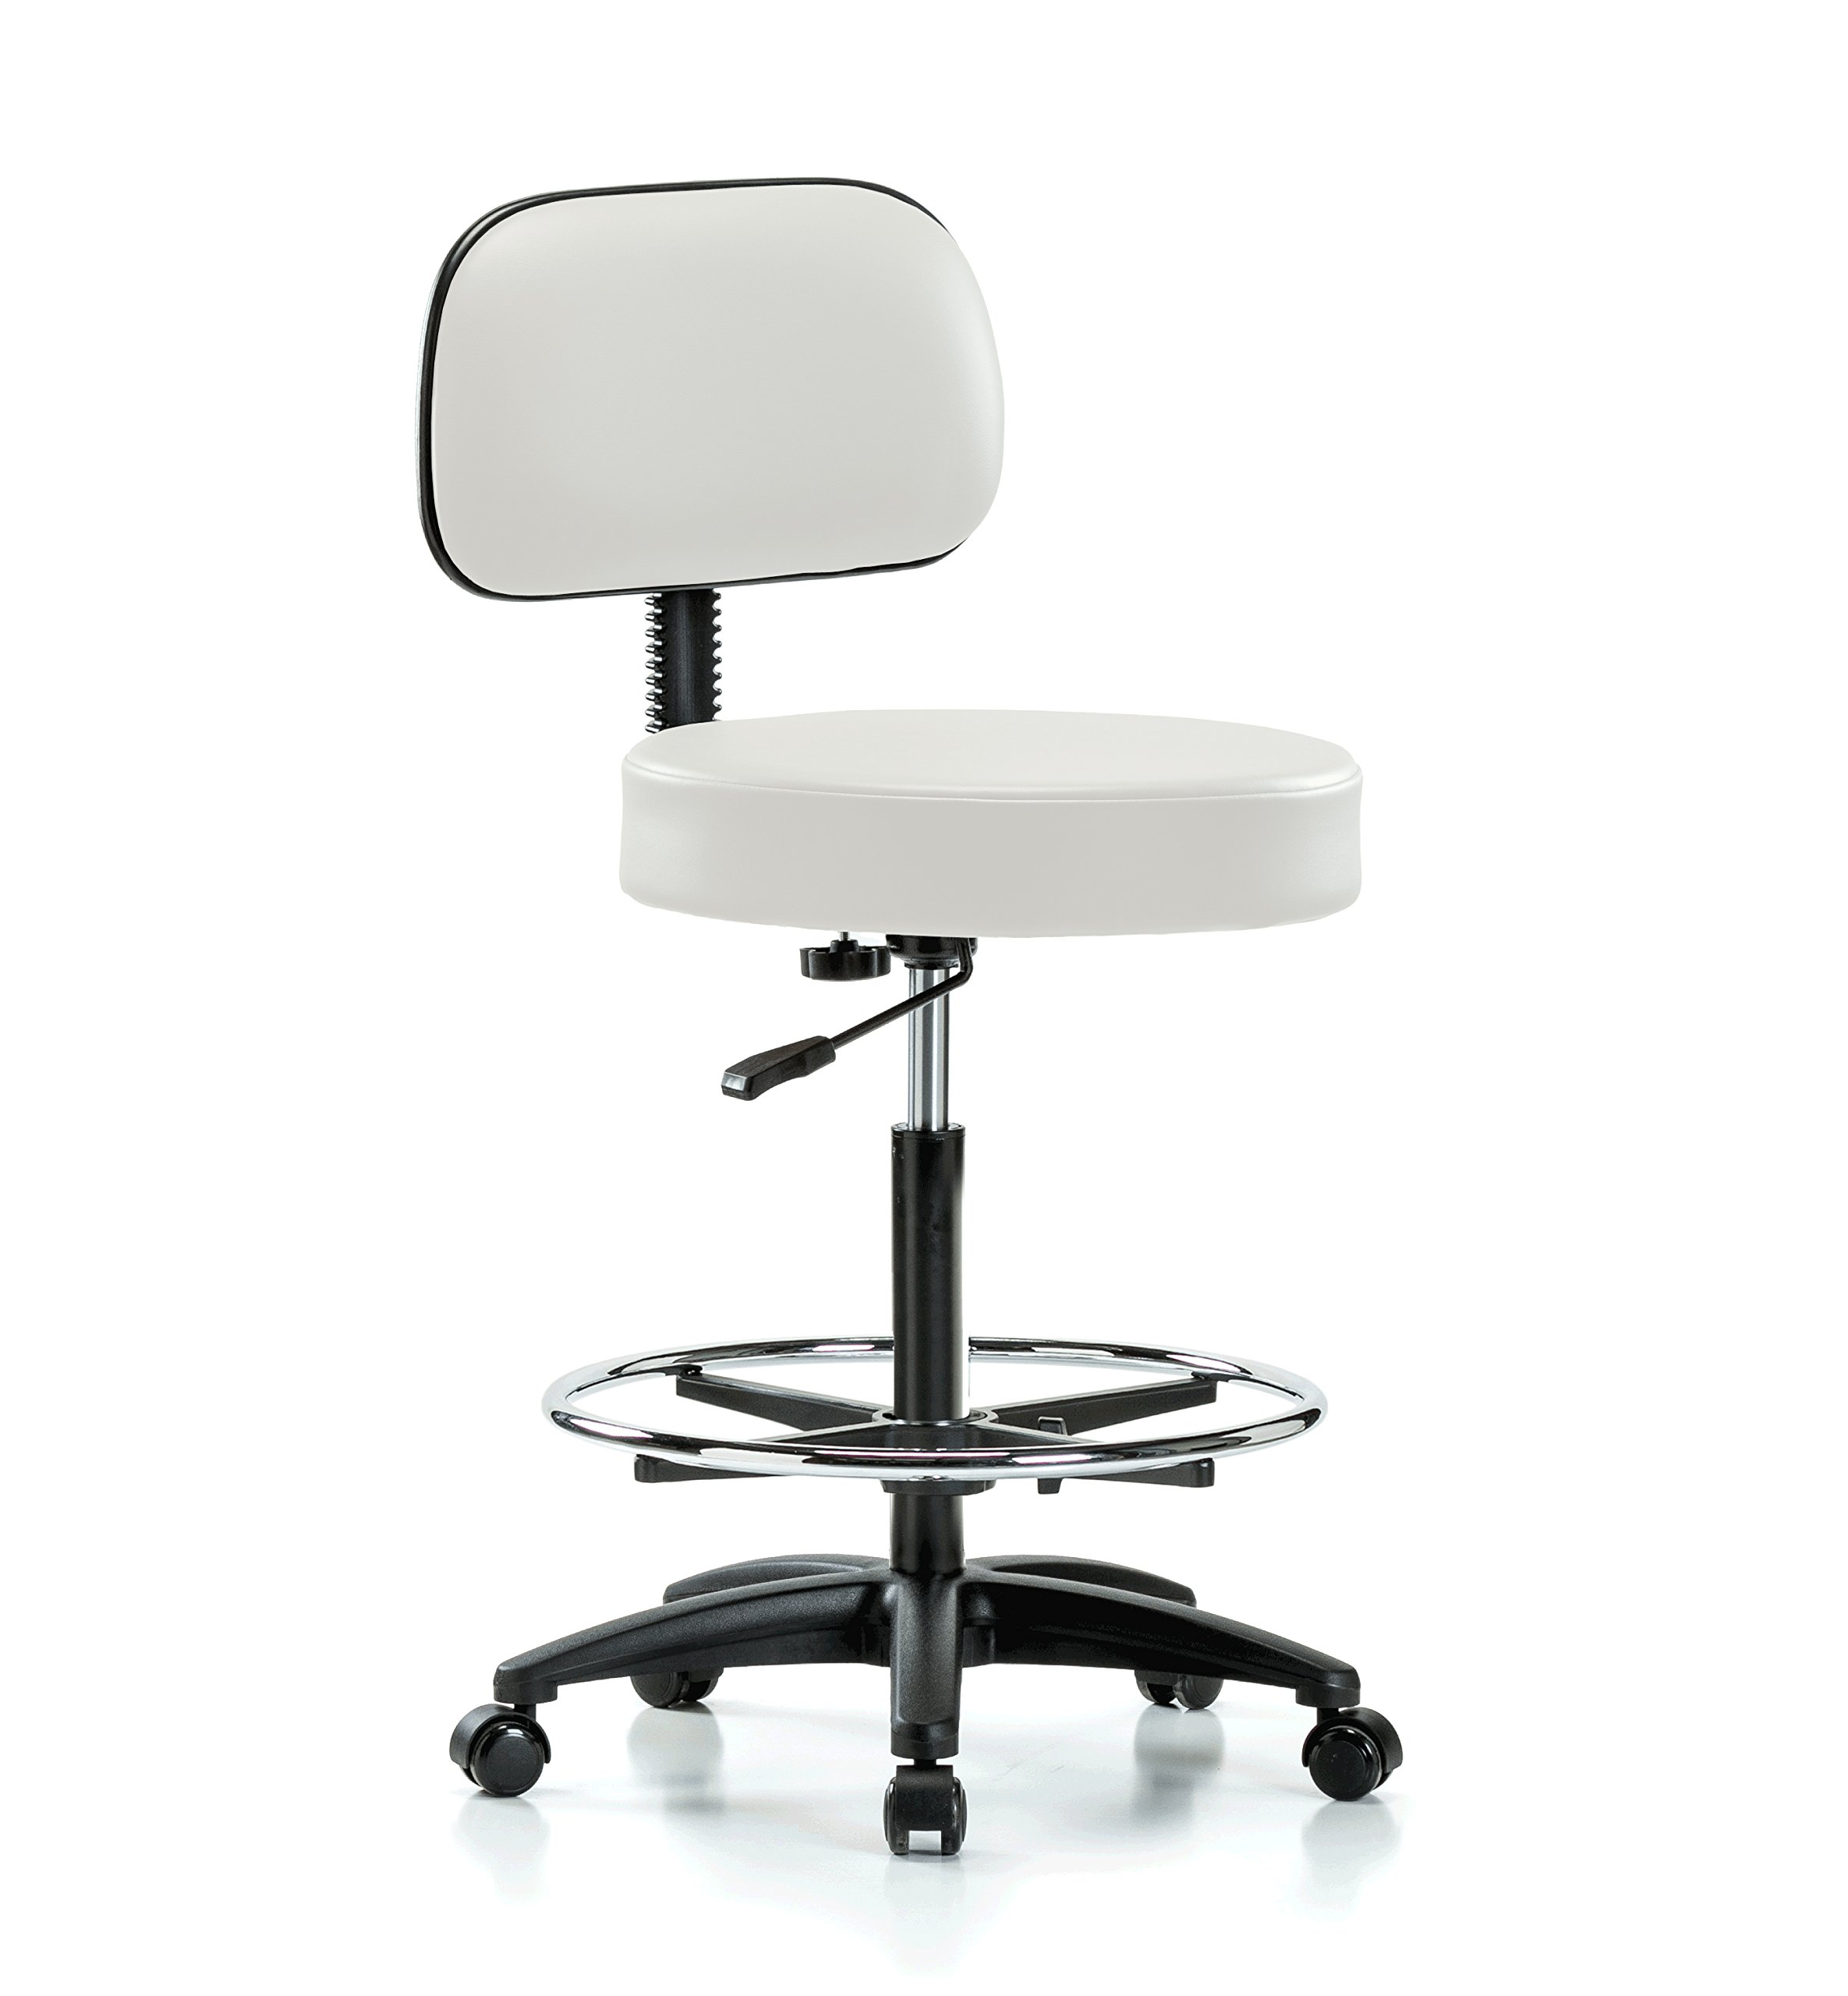 Perch Rolling Walter Exam Office Stool with Footring and Adjustable Backrest for Medical Dental Spa Salon Massage Lab or Workshop 25'' - 35'' (Soft Floor Casters/Adobe White Vinyl)